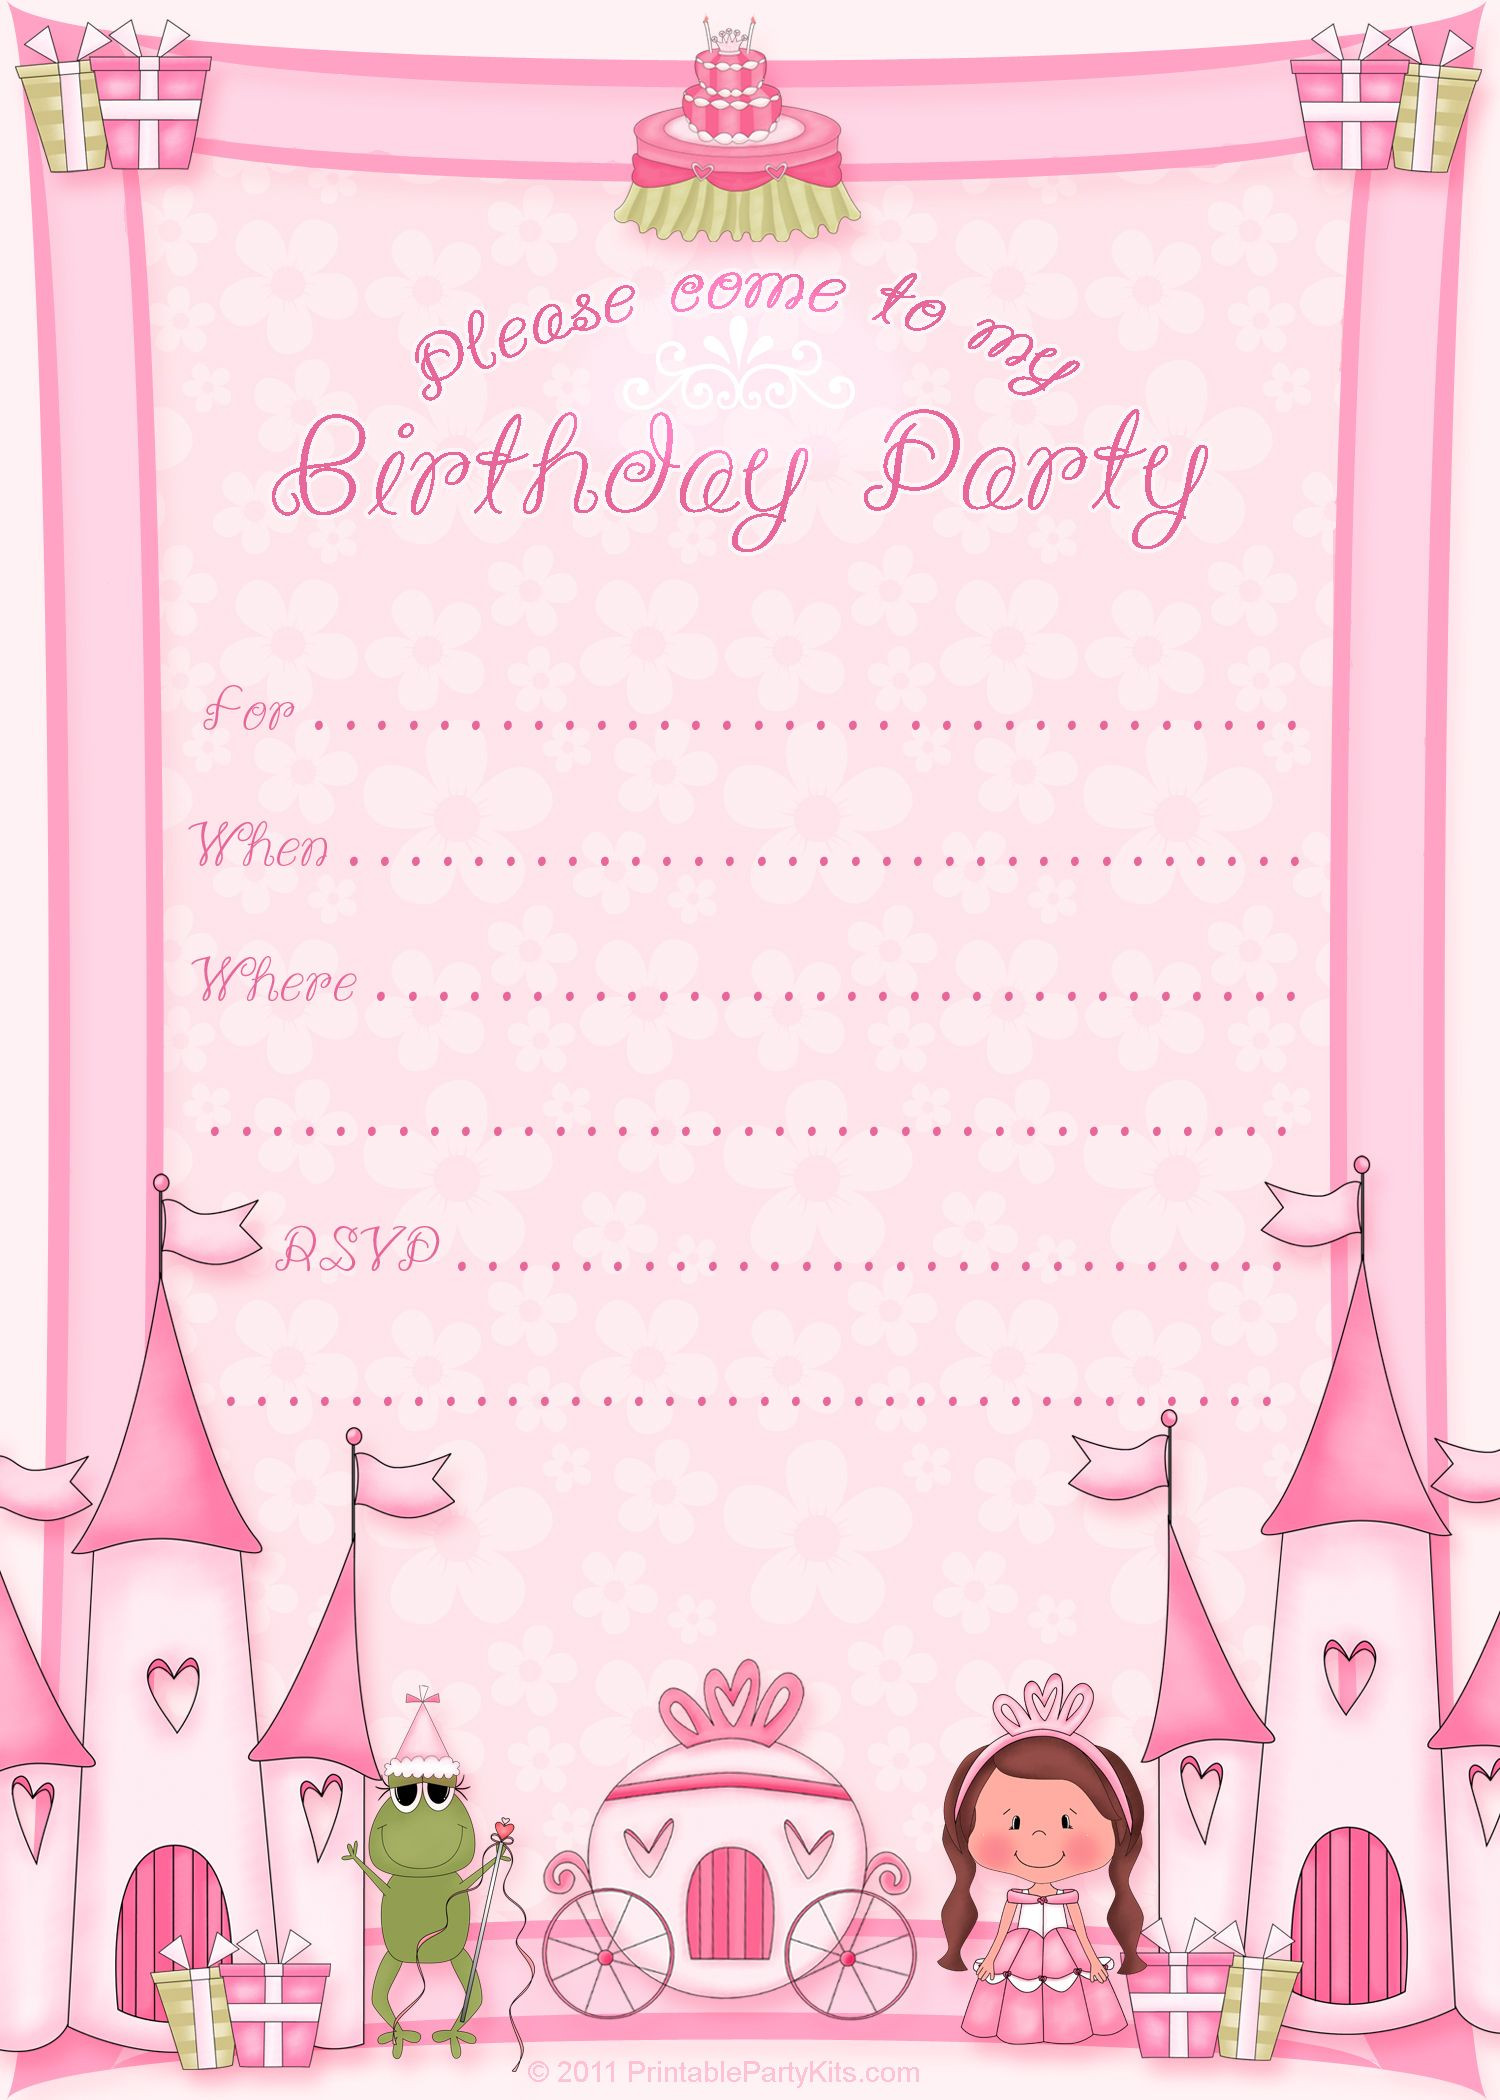 Best ideas about Birthday Party Invitation Template . Save or Pin Free Printable Invitation Pinned for Kidfolio the Now.